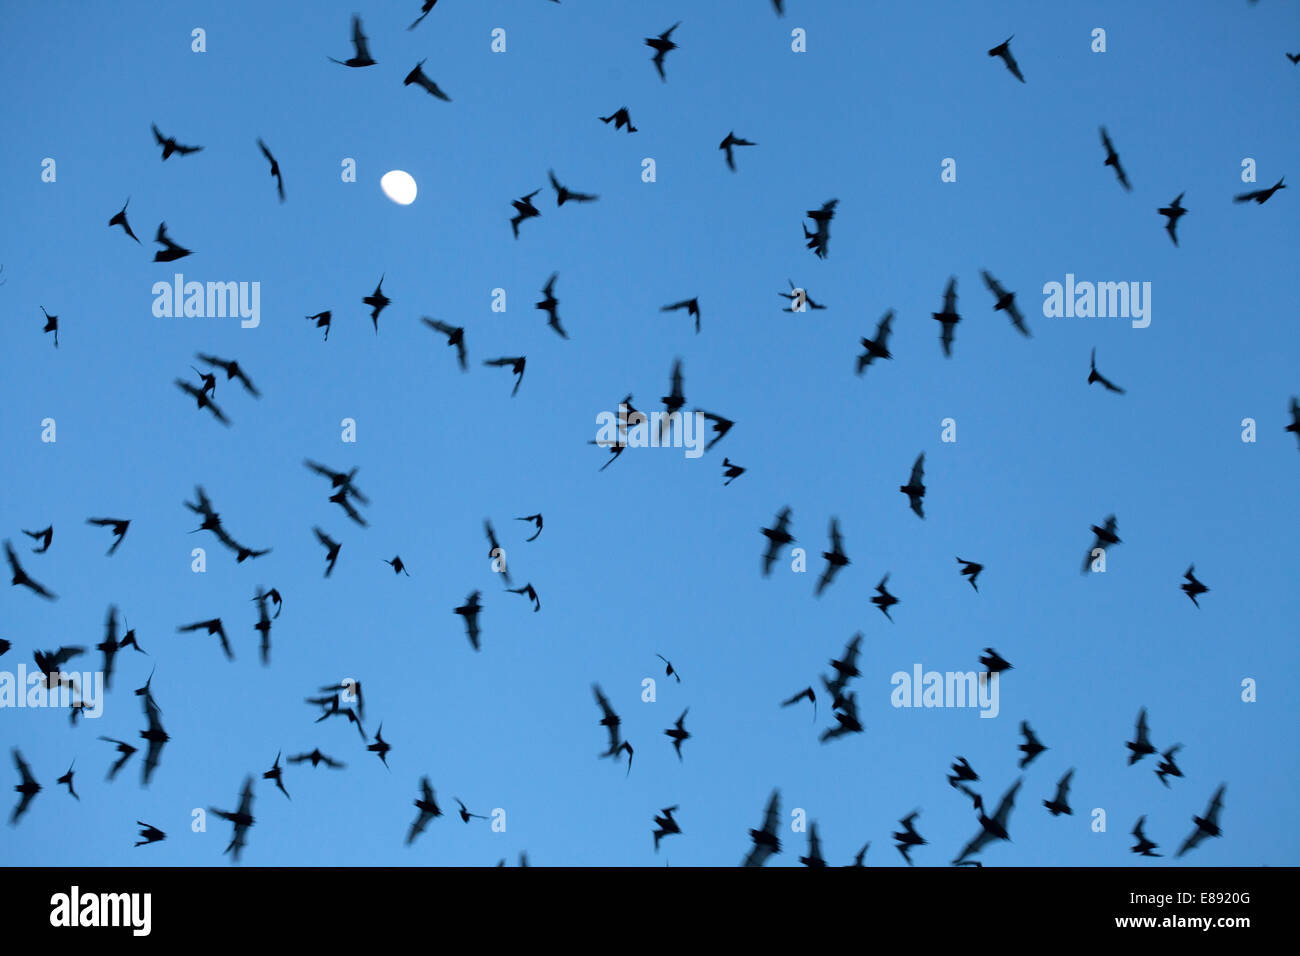 Bats fly in Calakmul Biosphere Reserve, Campeche state, Yucatan Peninsula, Mexico - Stock Image